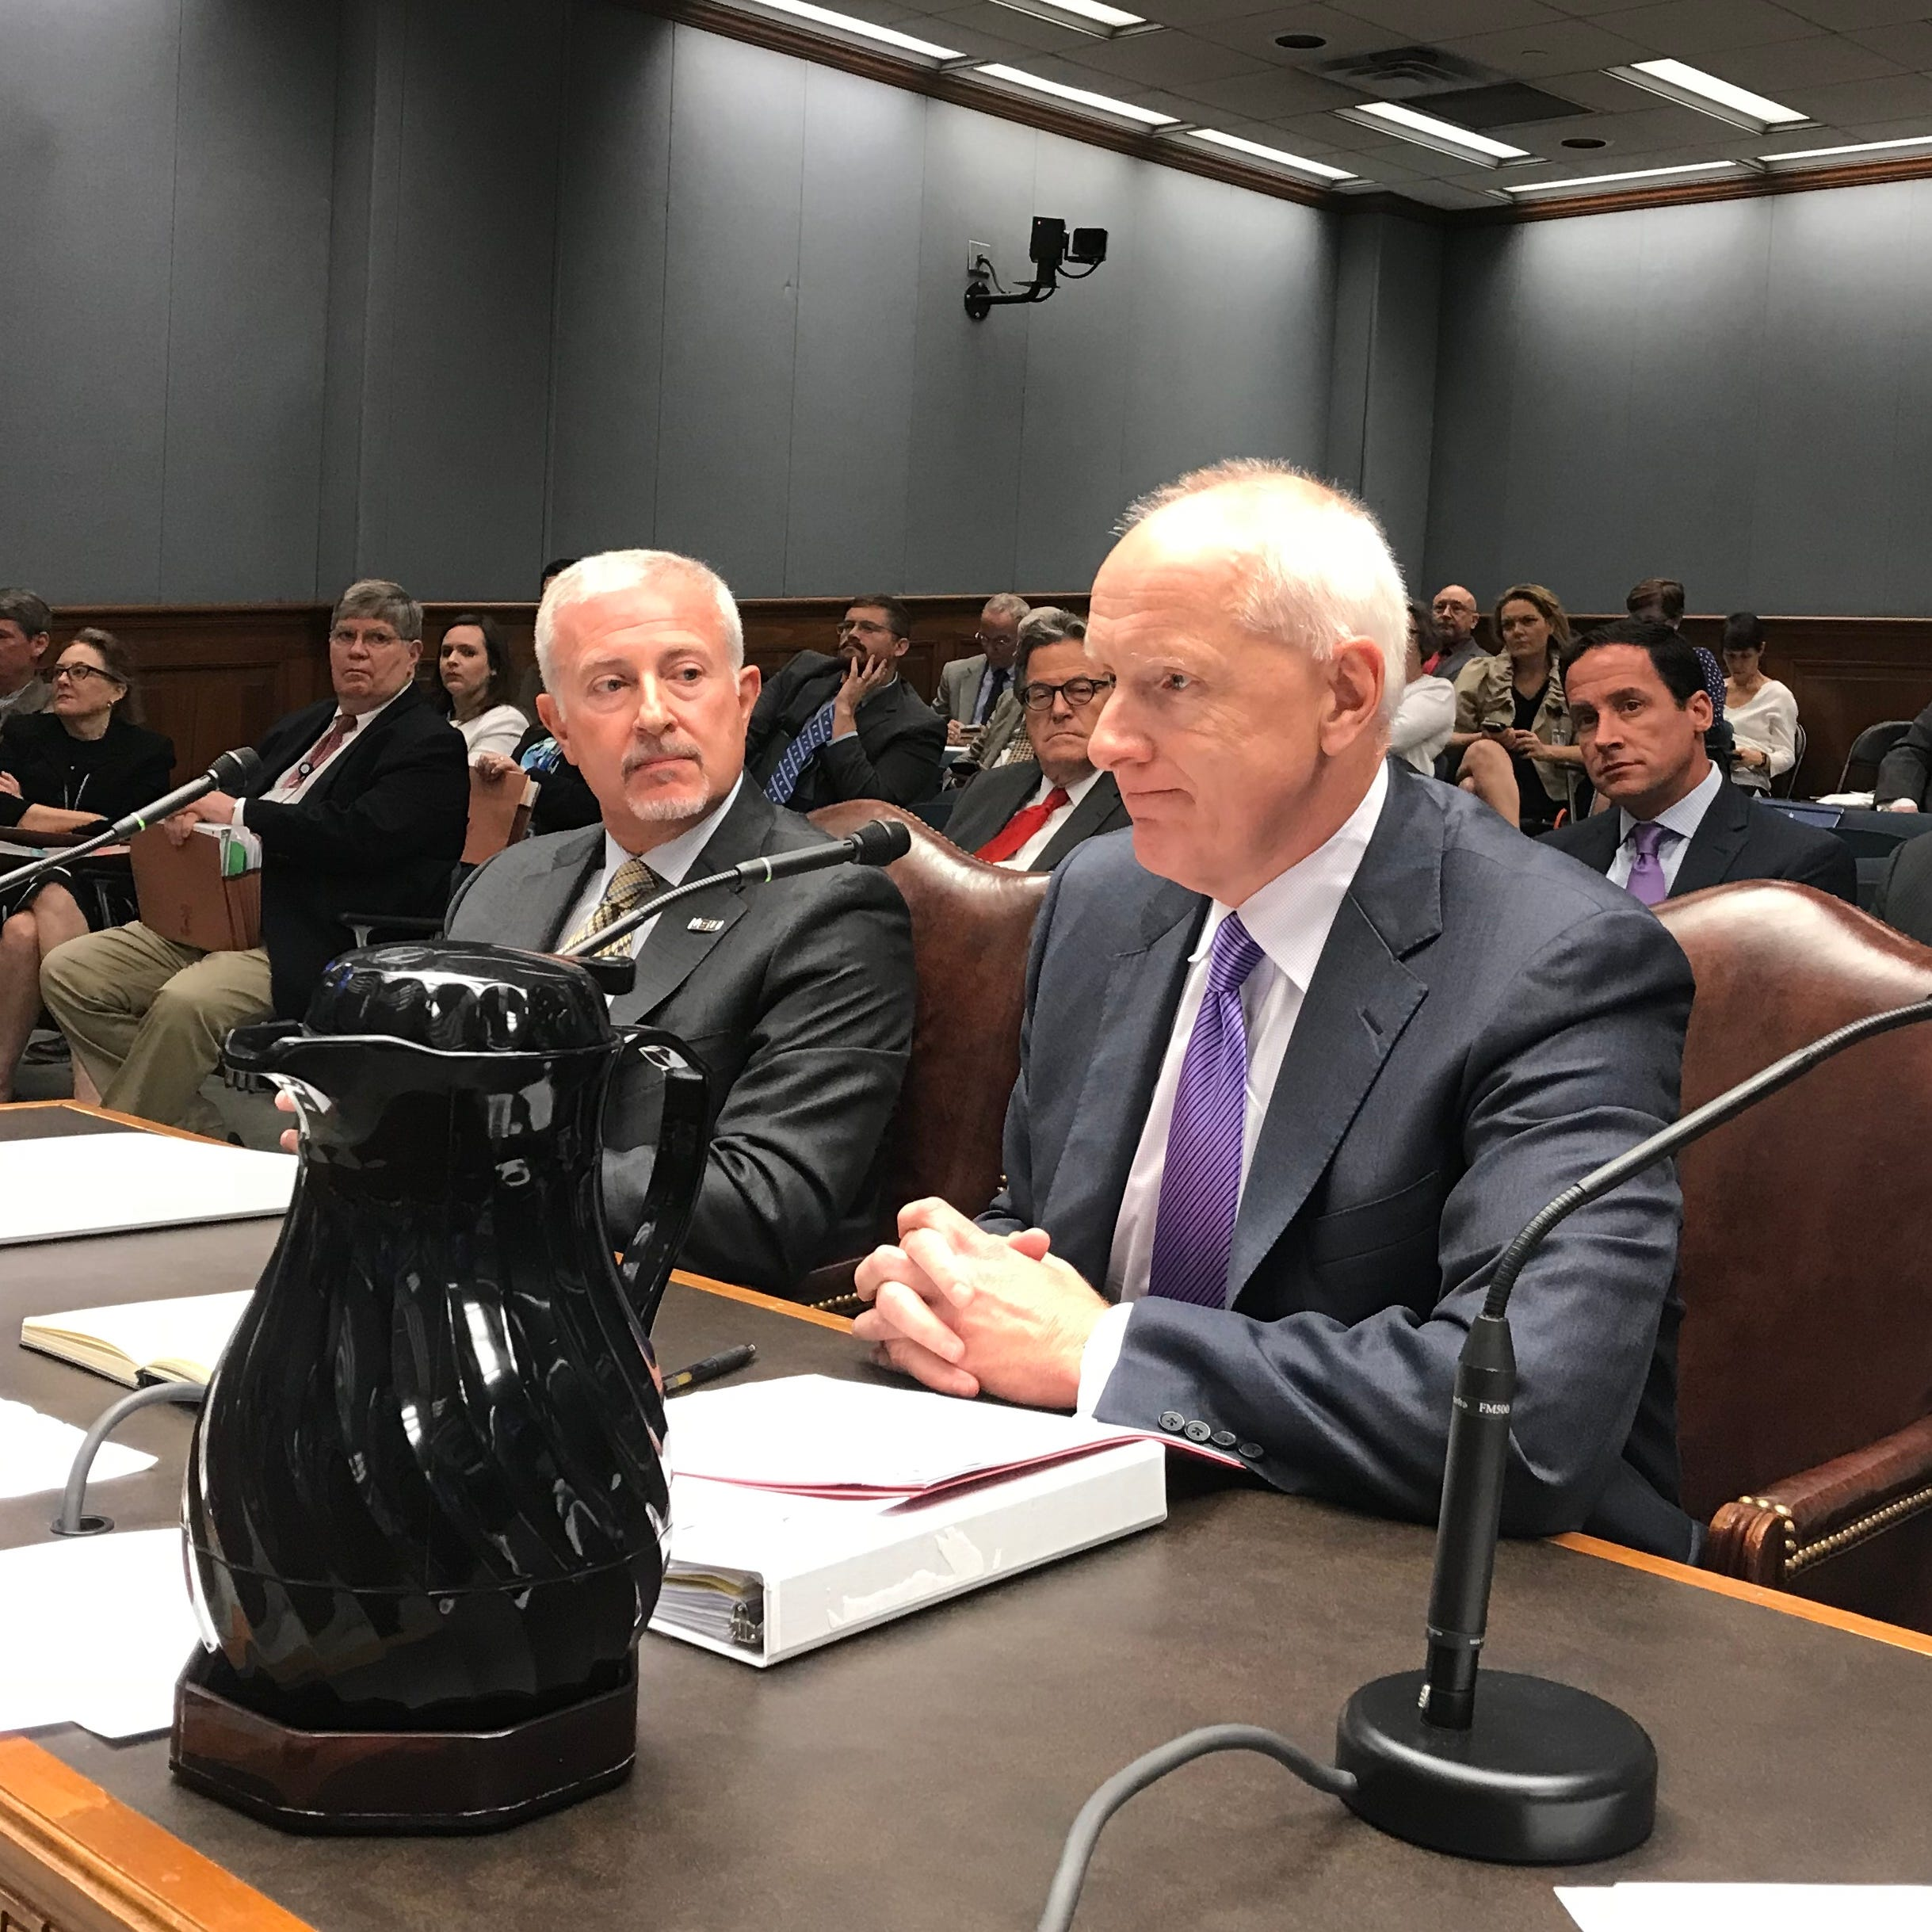 LSU Health Sciences Shreveport Chancellor G.E. Ghali, right, and Ochsner Health System CEO Warner Thomas testify during the Joint Legislative Budget Committee Tuesday.